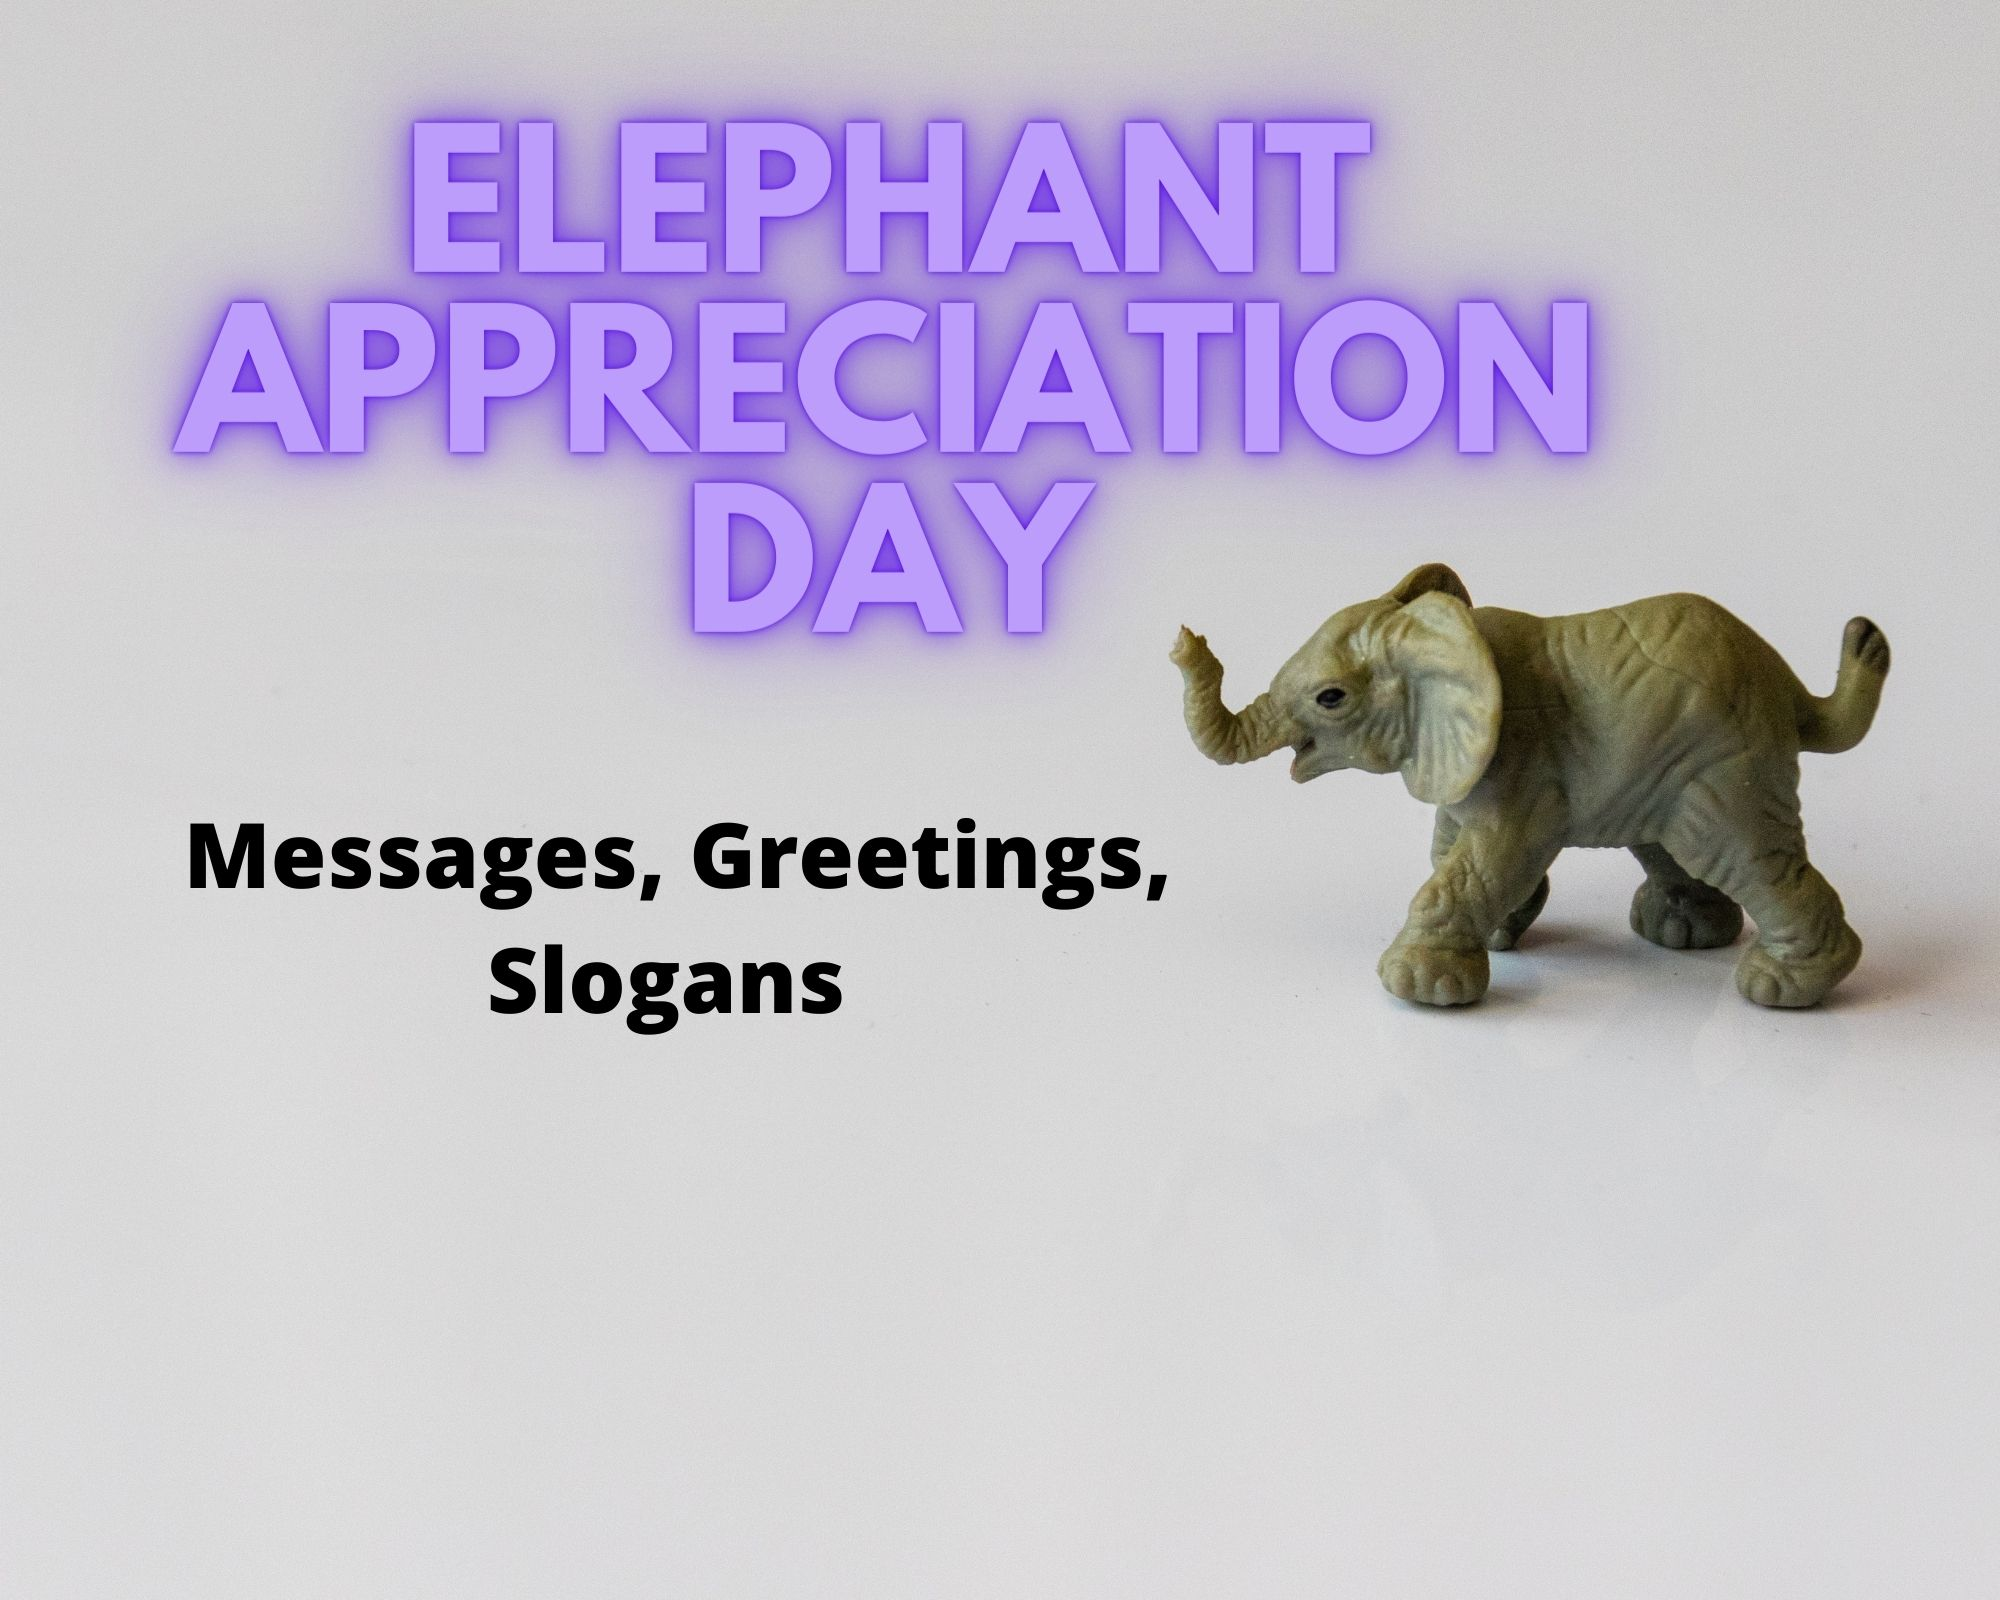 Elephant Appreciation Day Messages, Greetings, Slogans